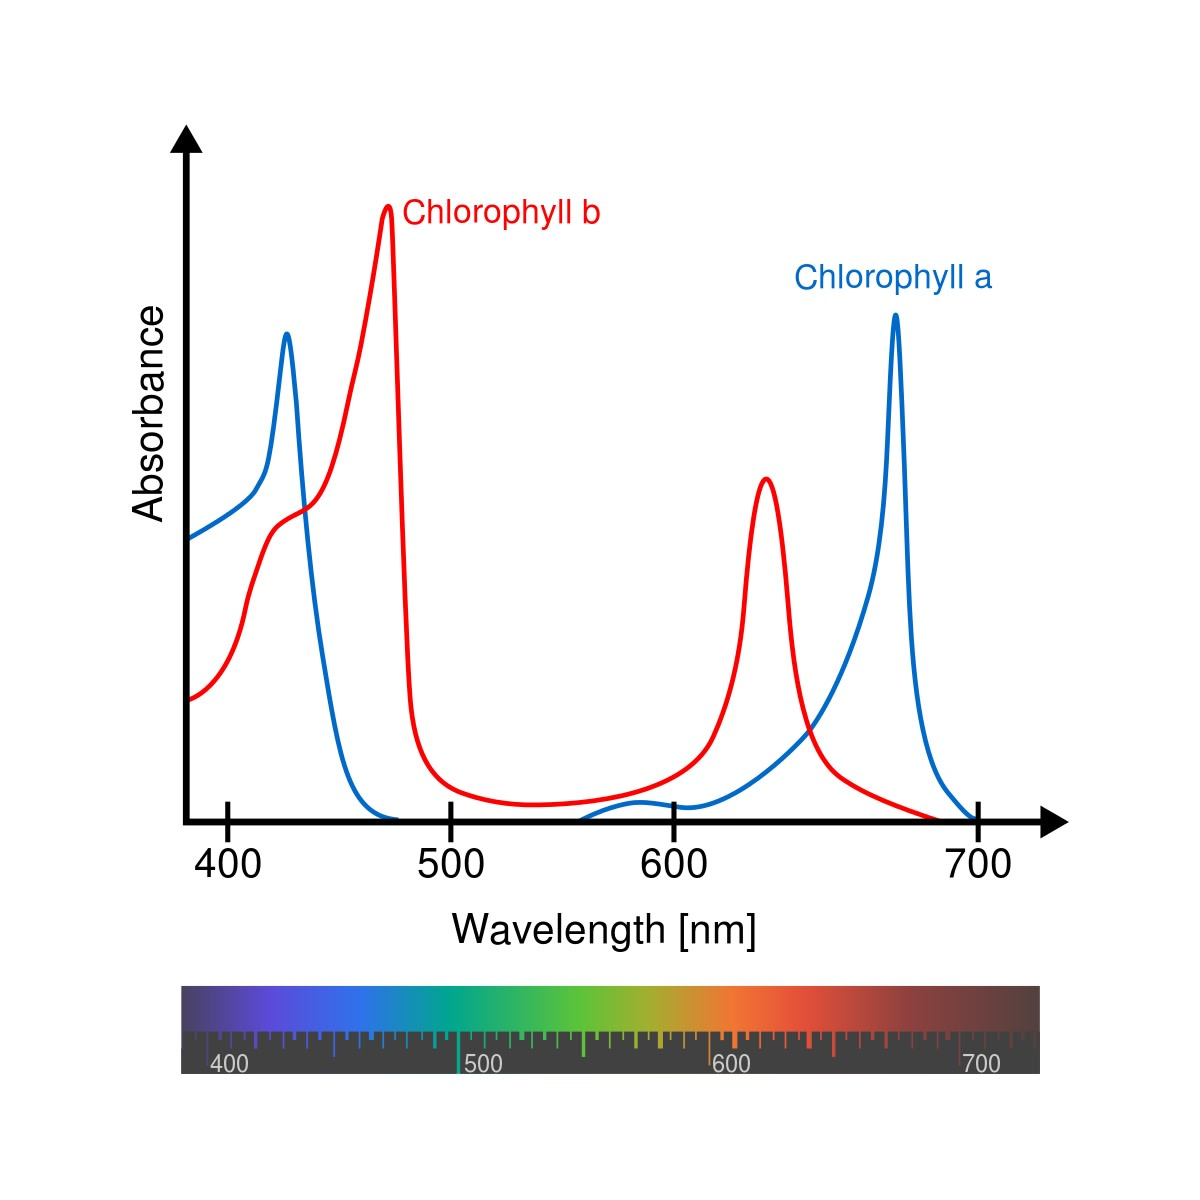 The absorption spectra of chlorophyll a and b are slightly different. Wavelength is measured in nm, or nanometers. A nanometer is a billionth of a meter.